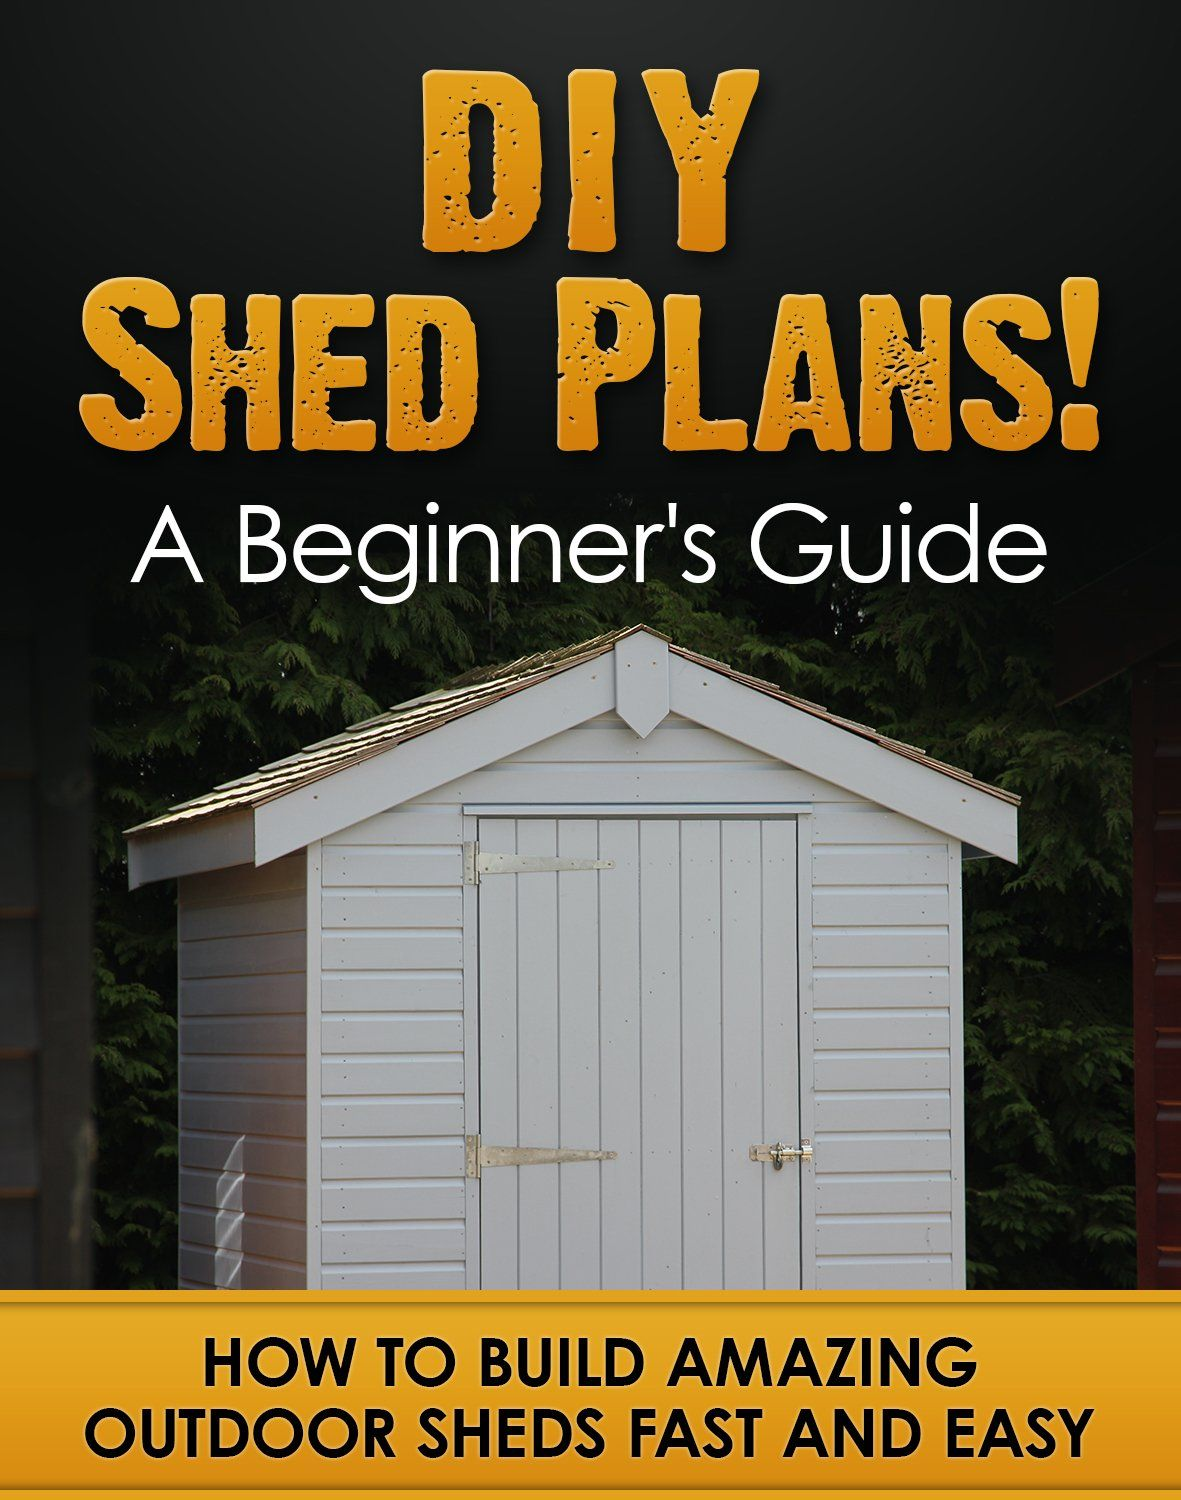 Diy Shed Plans A Beginner S Guide How To Build Amazing